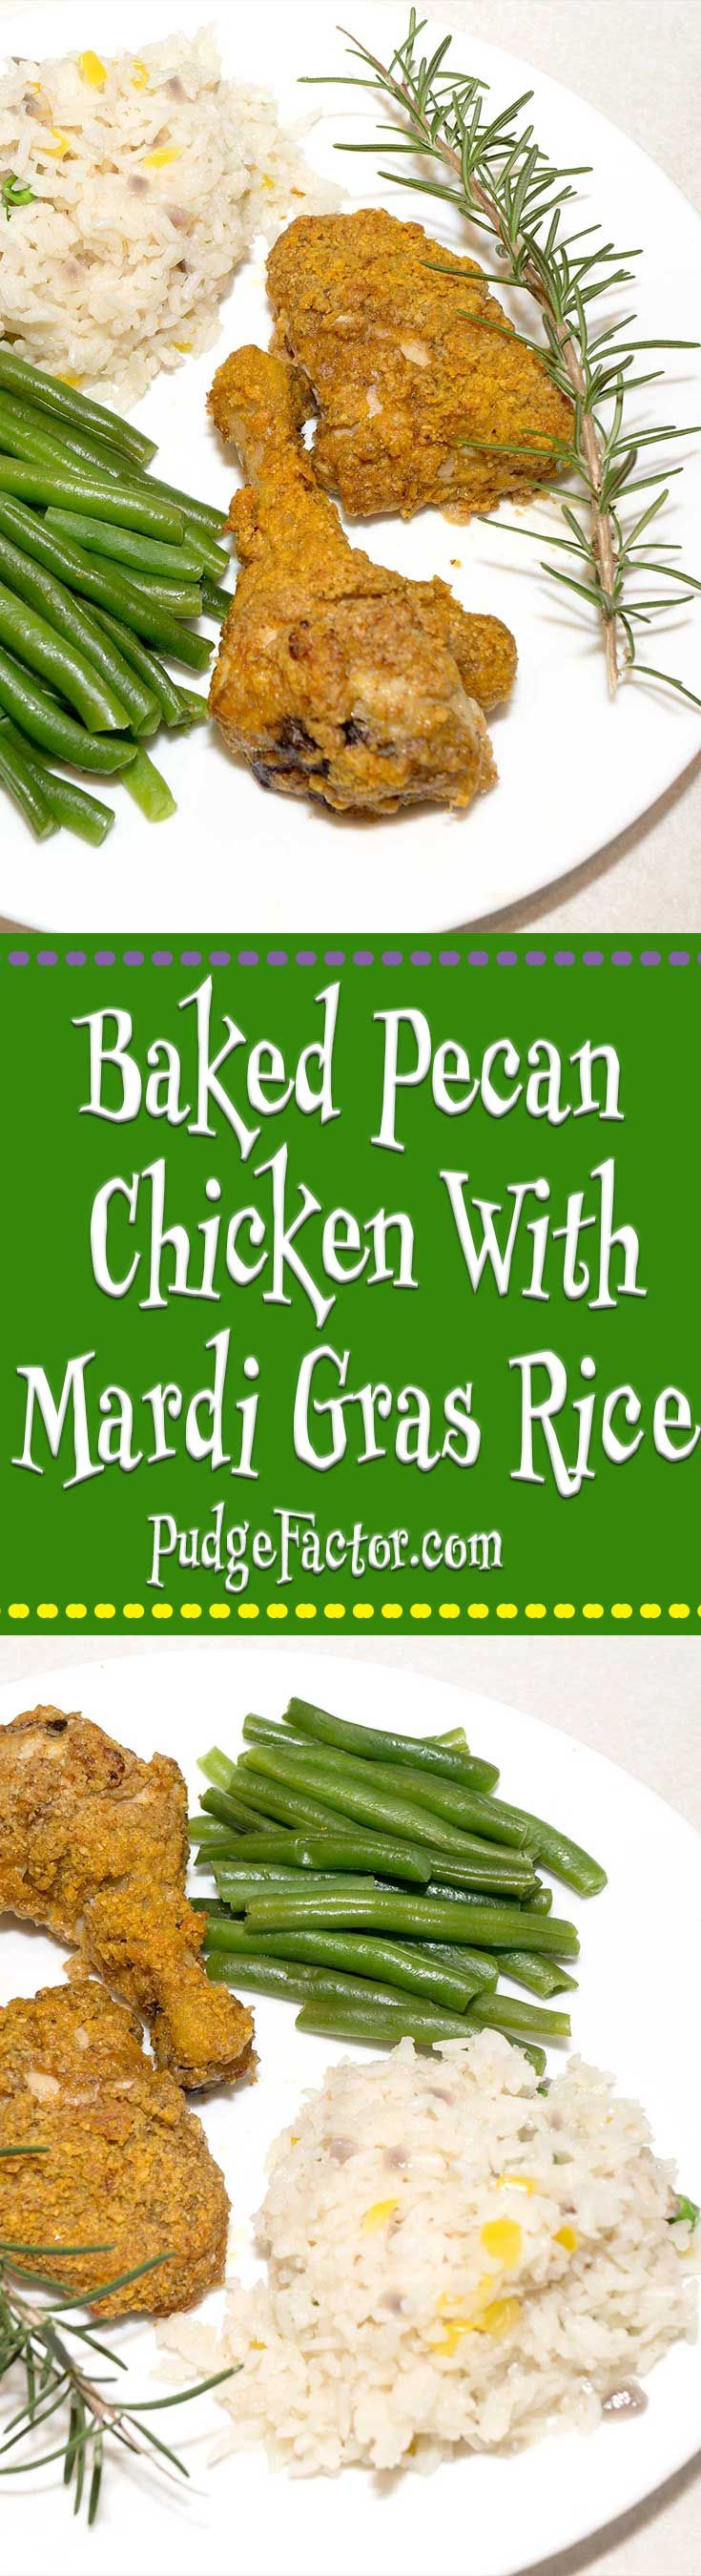 Baked Pecan Chicken with Mardi Gras Rice - succulent pieces of chicken coated in pecan meal served with flavorful rice. via @c2king